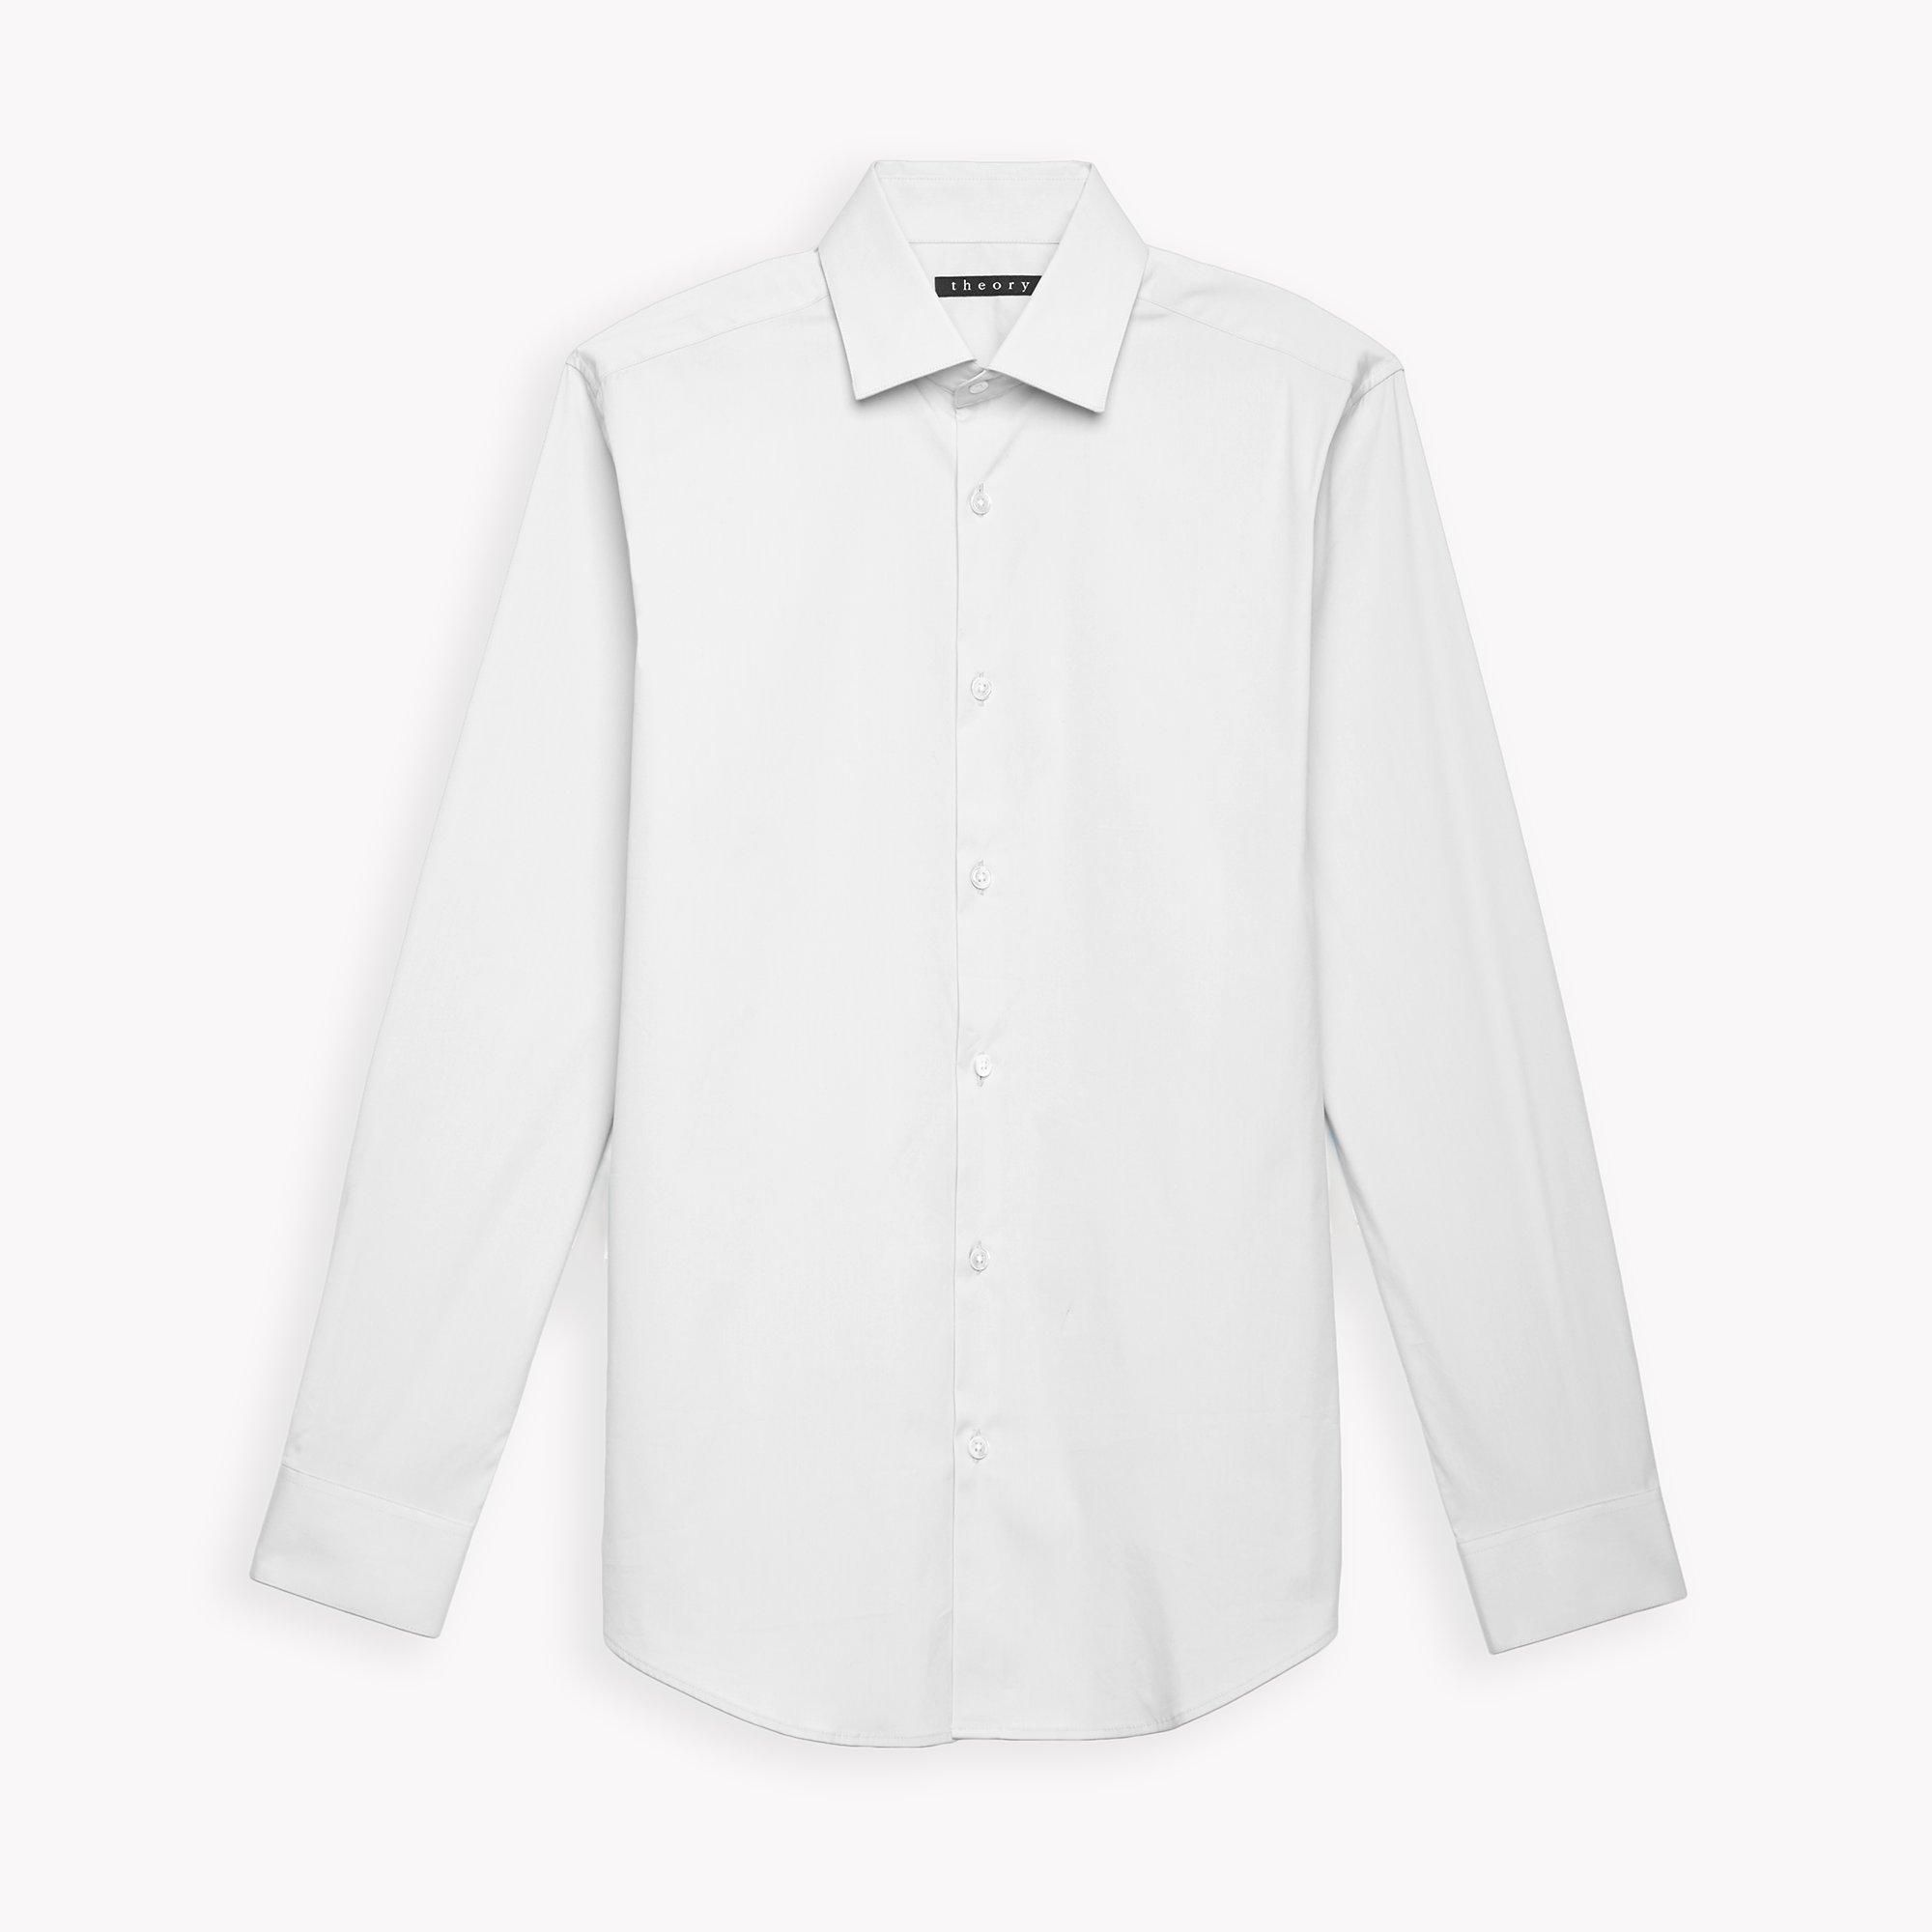 Our classic dress shirt. Perfect with any suit.